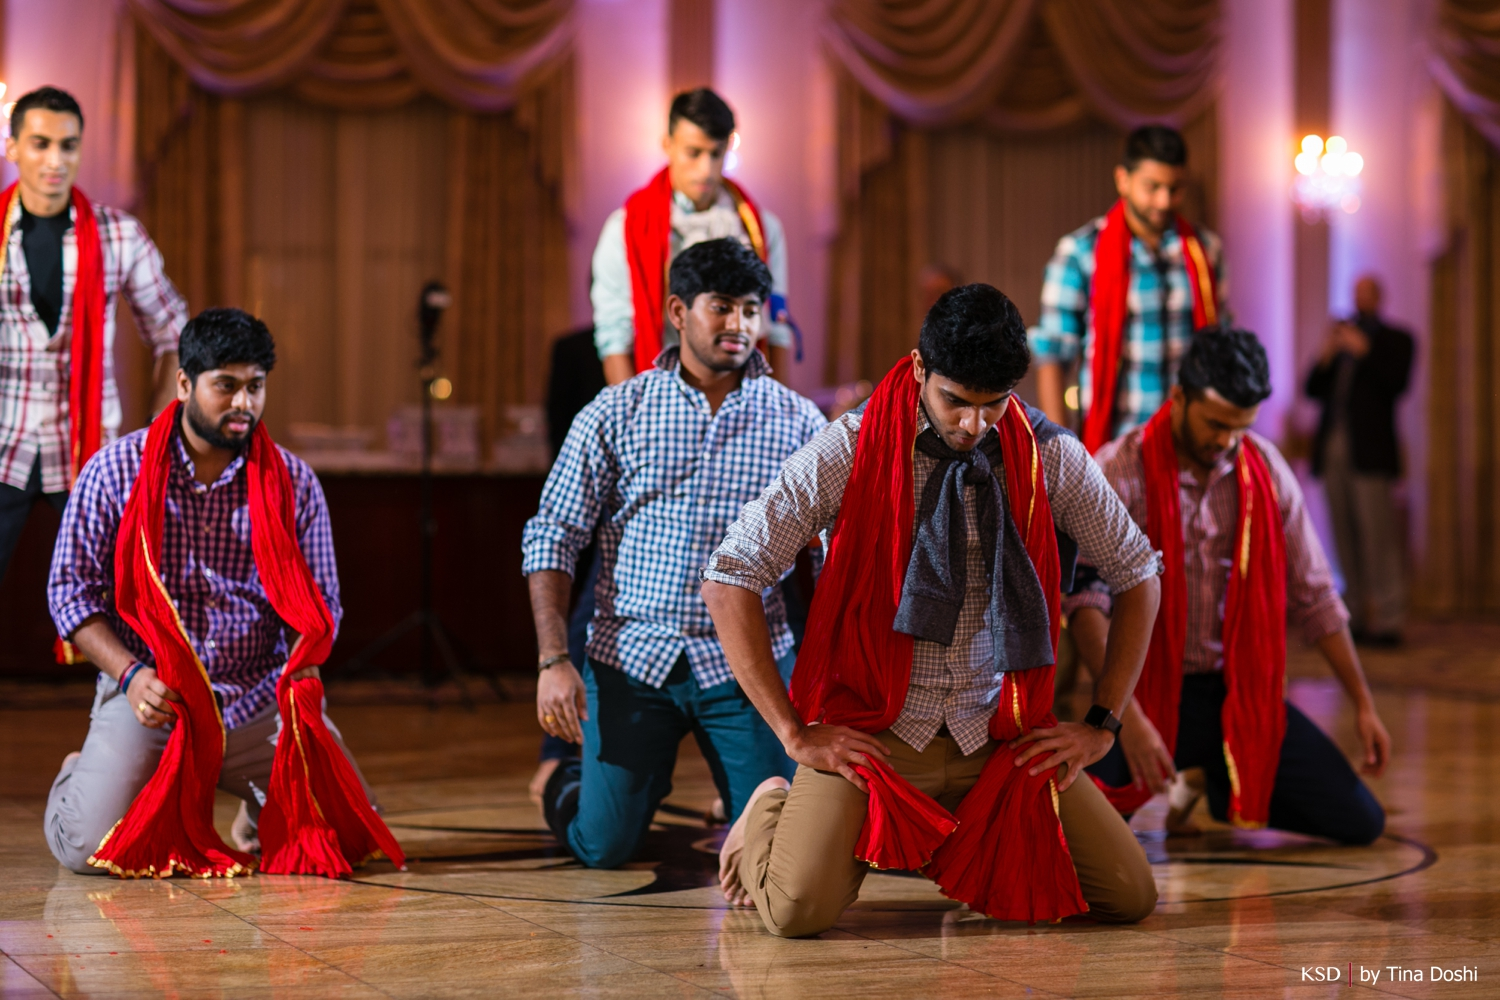 nj_south_asian_wedding_0122